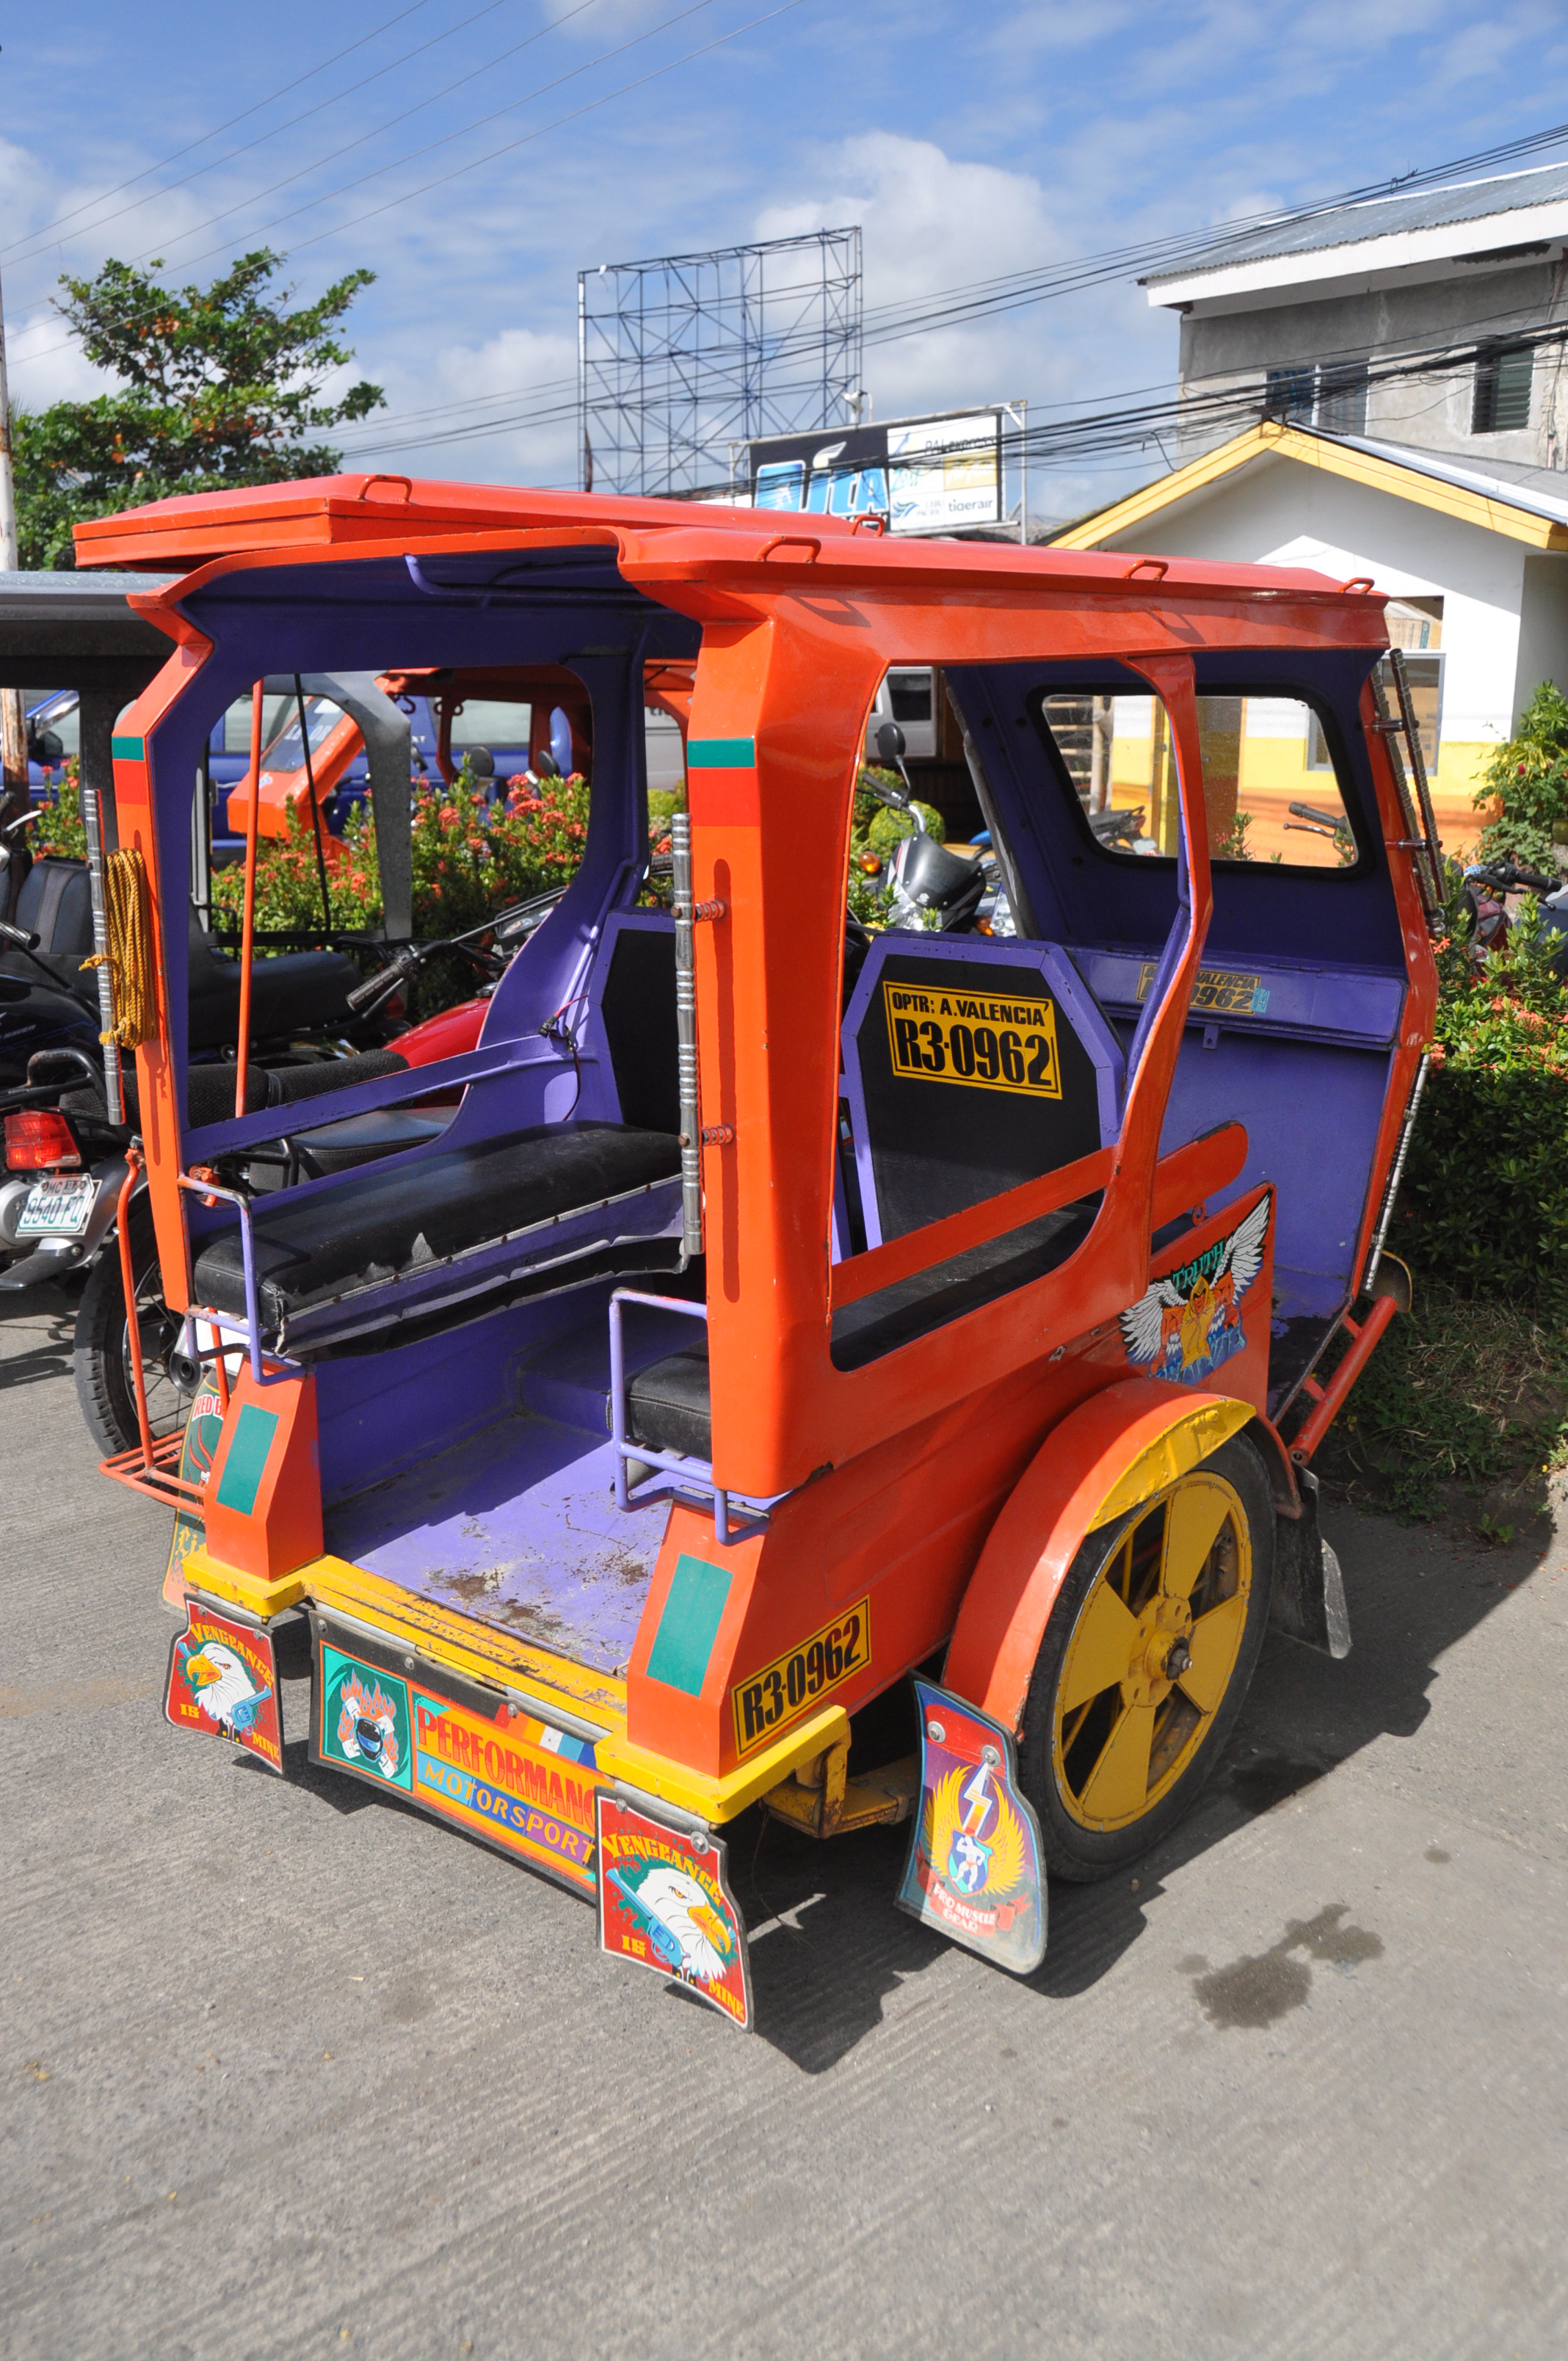 Philippines Tricycle Budget less than $50 per day Airplane